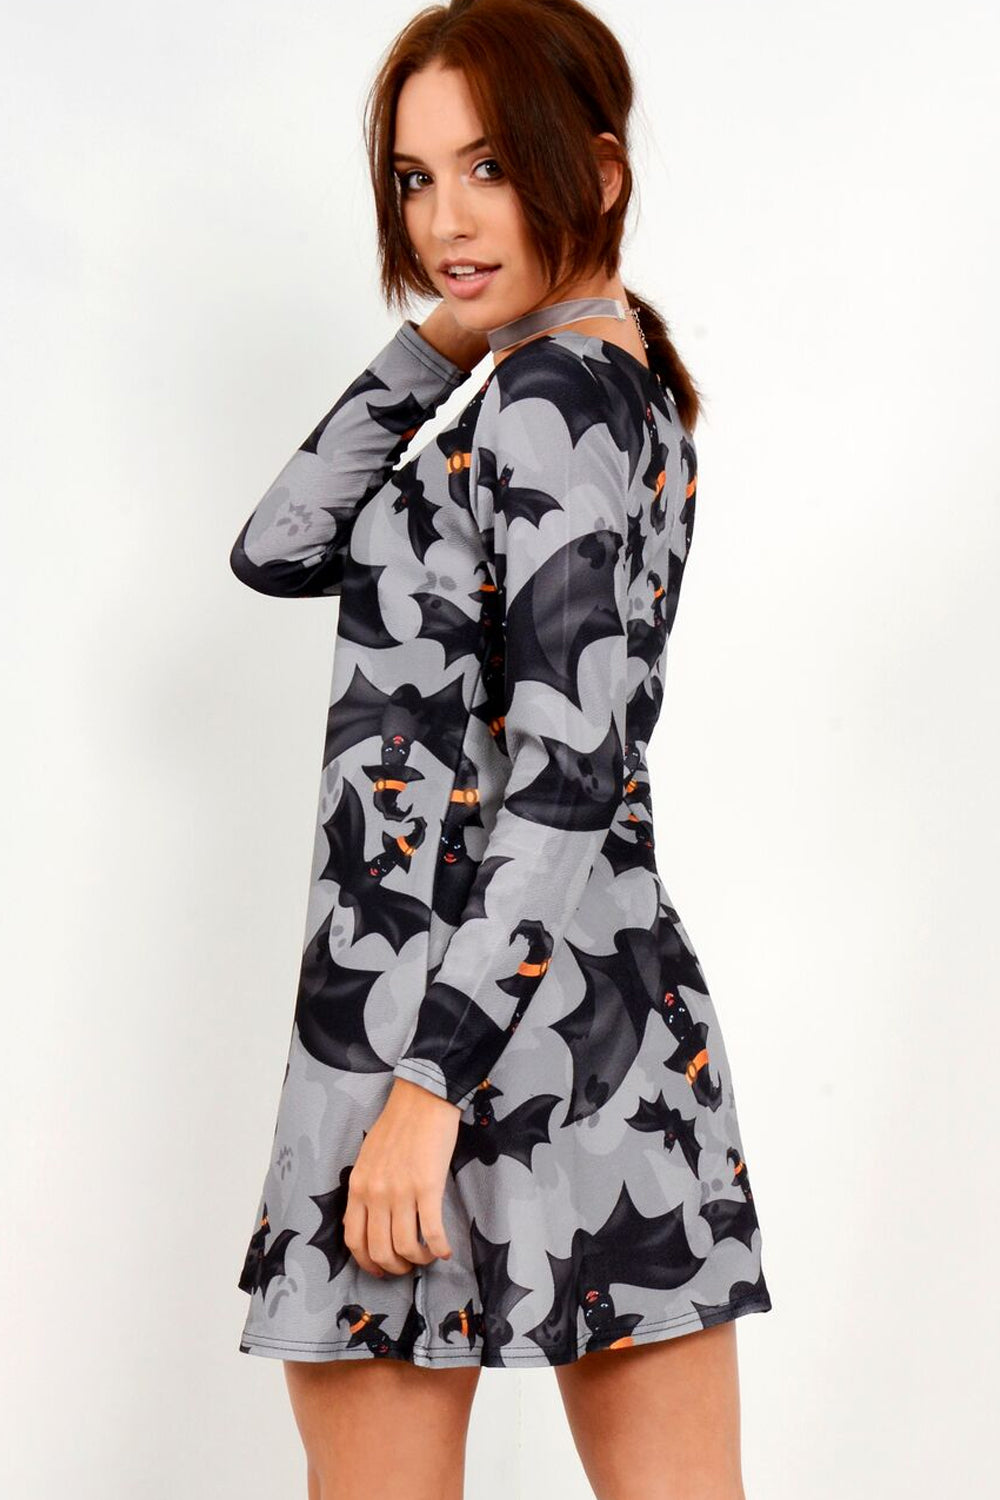 Long Sleeve Grey Halloween Print Dress - bejealous-com